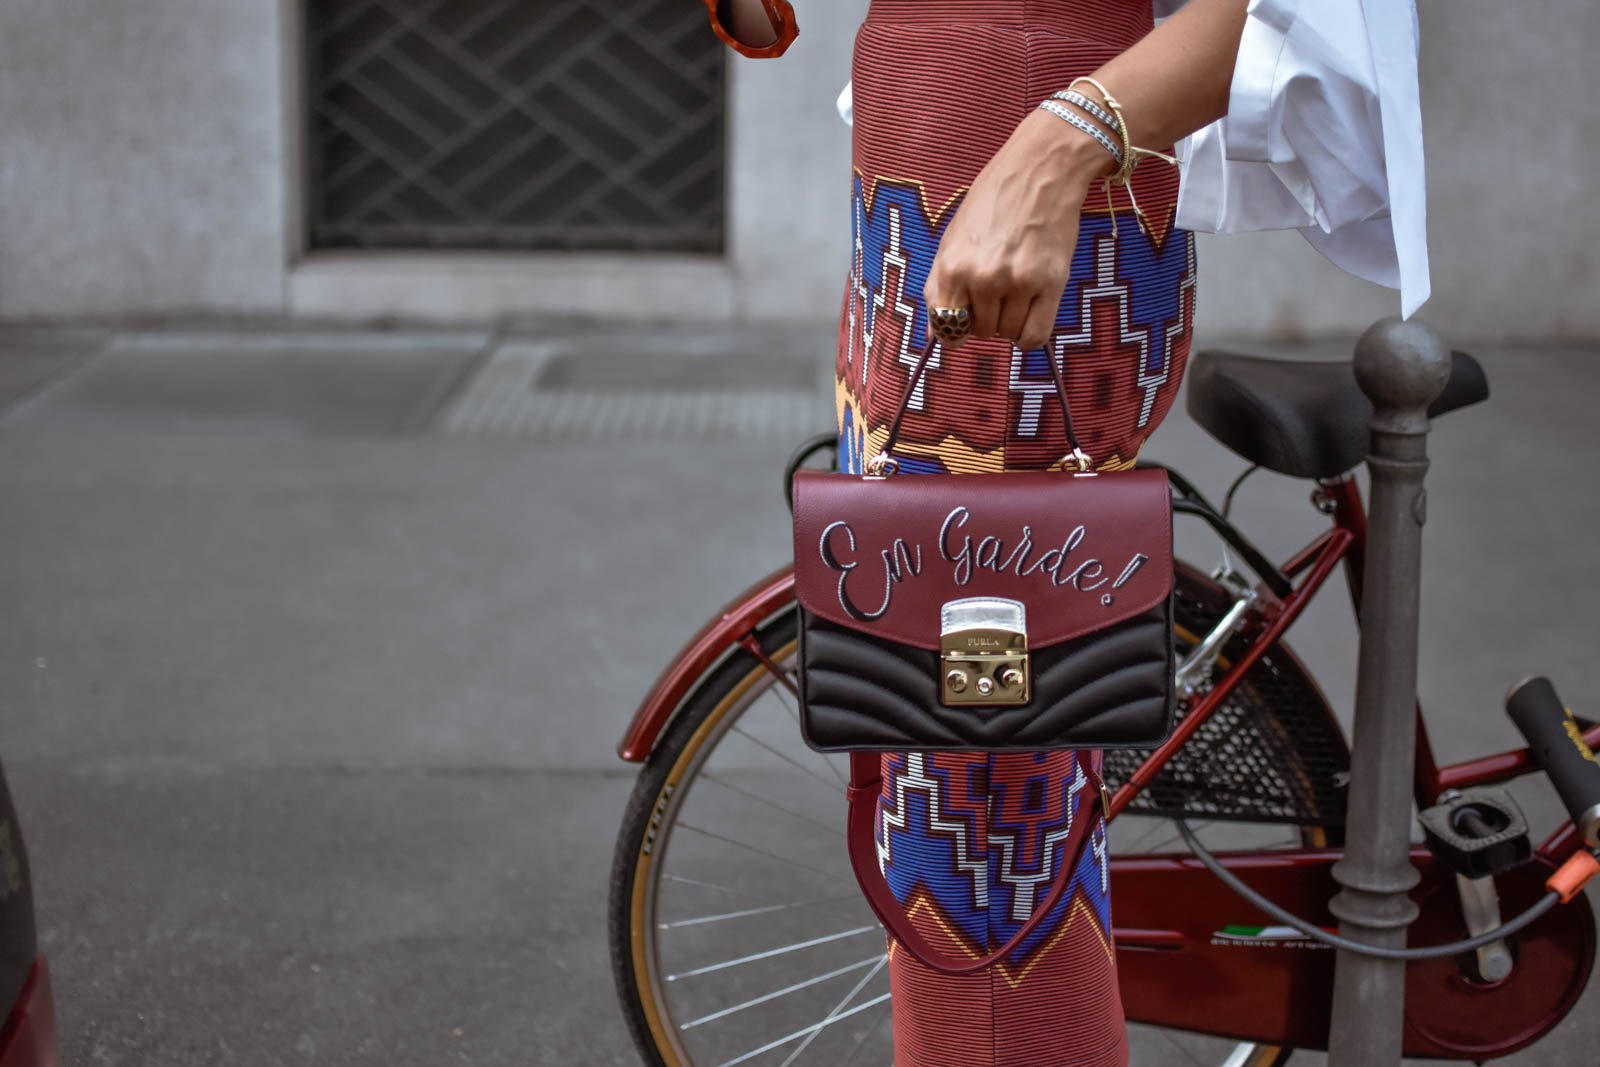 el-blog-de-silvia-rodriguez-street-style-mfw-milan-fashion-week-casadei-shoes-furla-bag-blouse-maria-elena-villamil-look-blogger